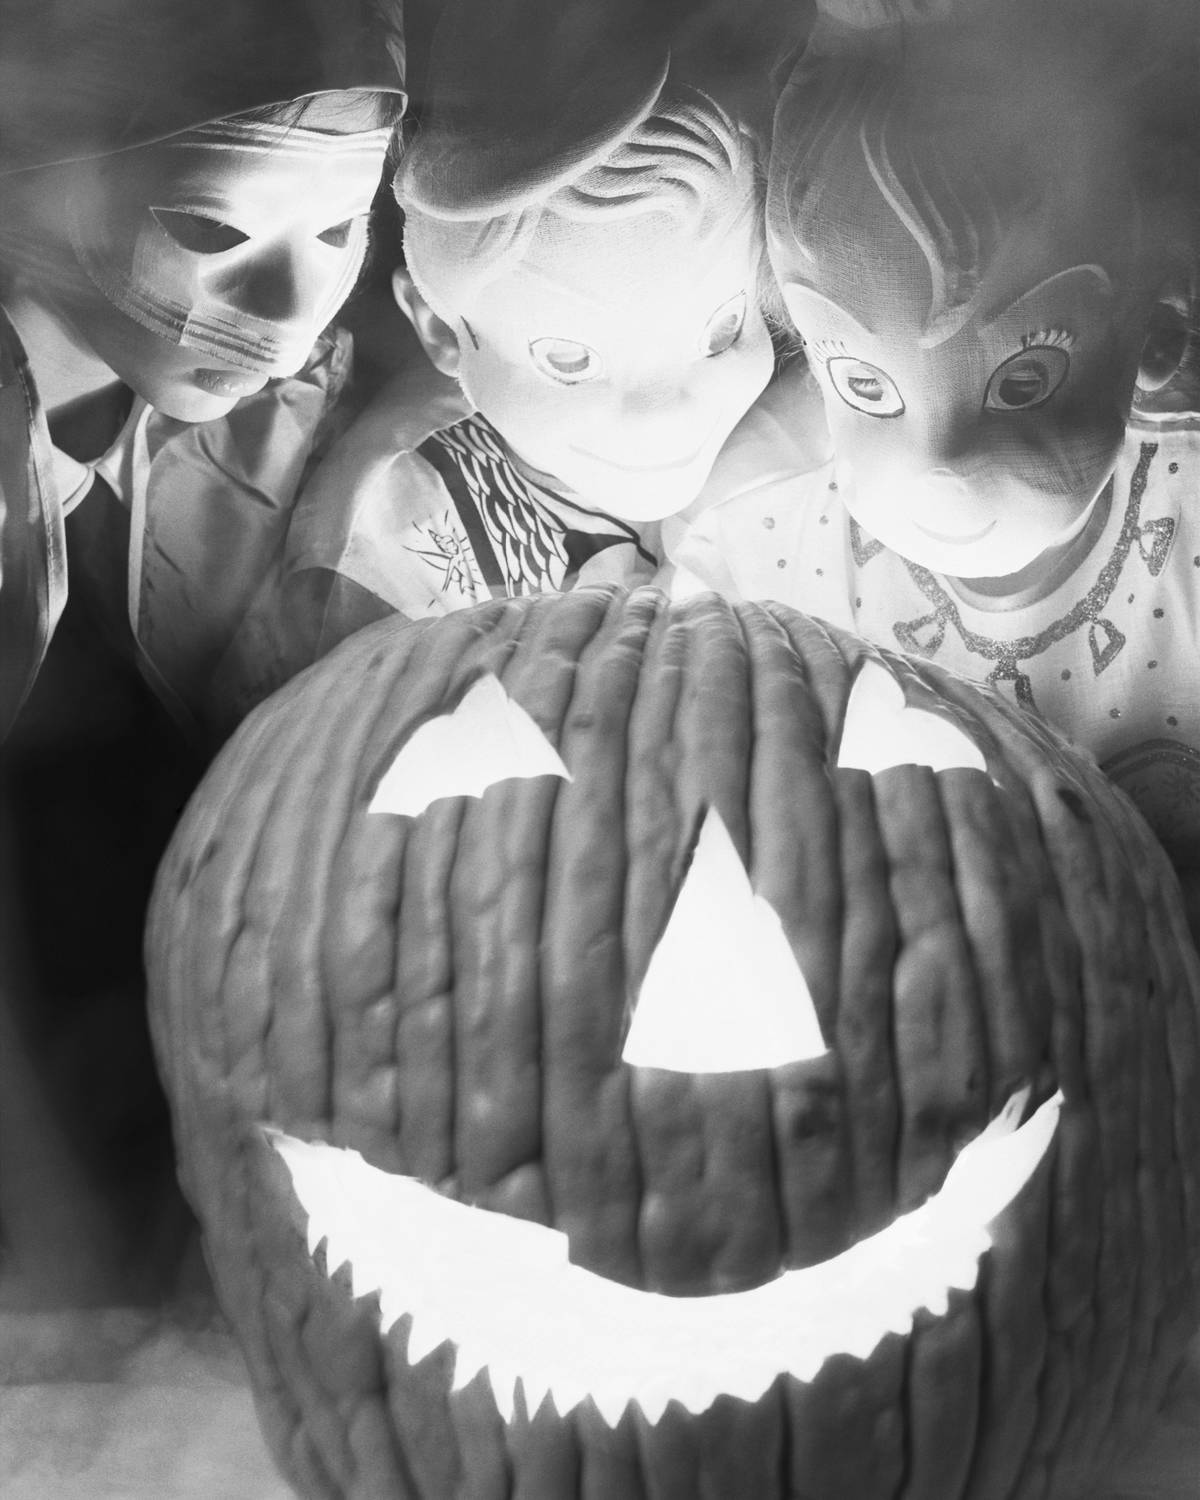 Children dressed as goblins surround a jack-o'-lantern in a photo from 1953